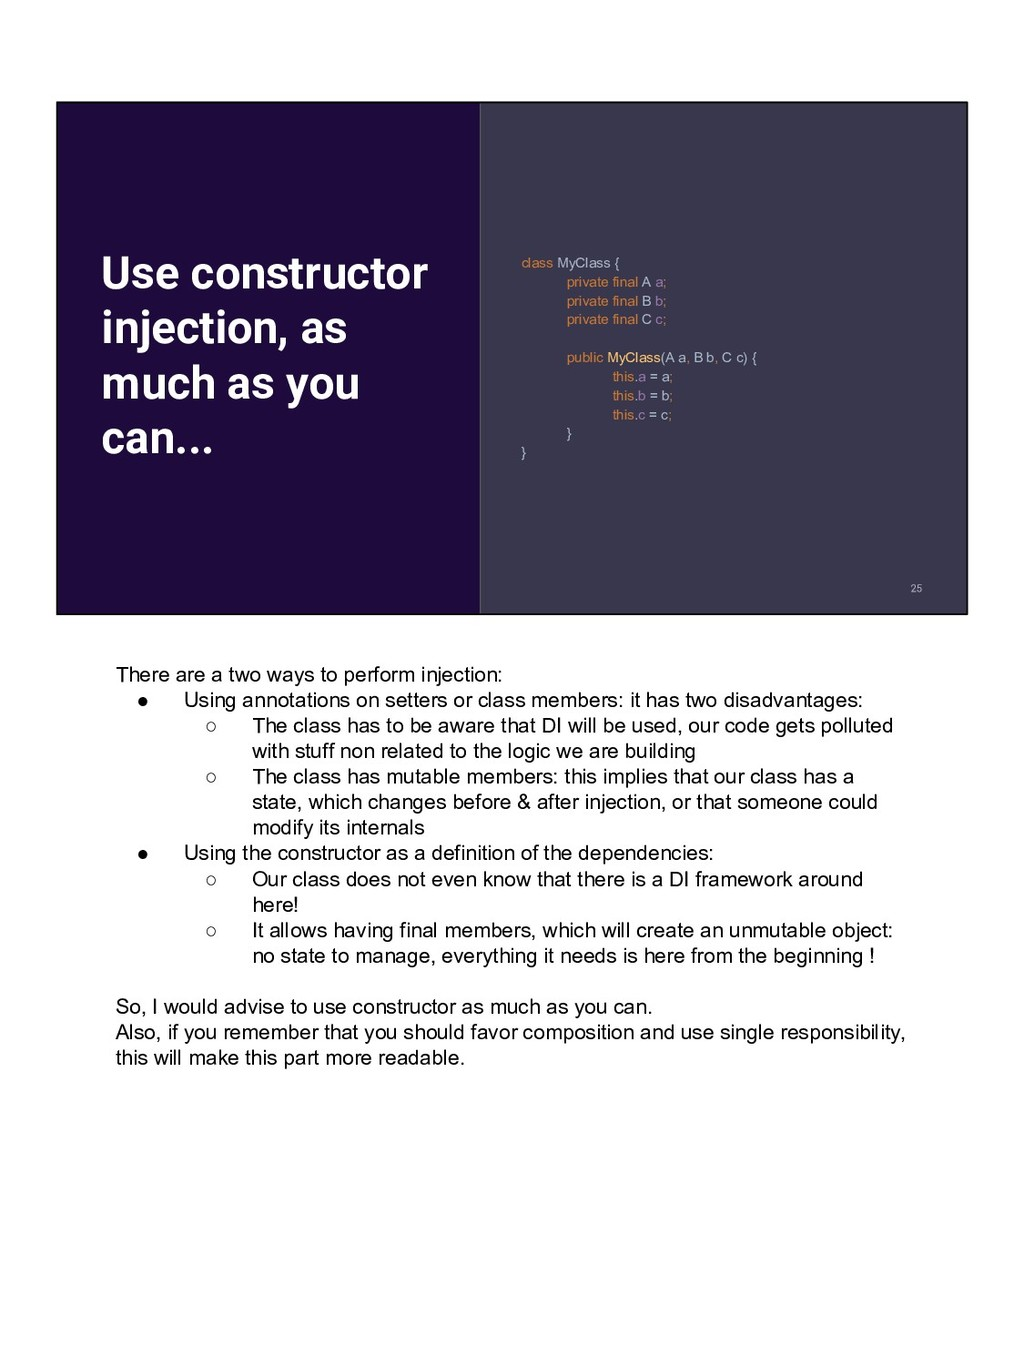 Use constructor injection, as much as you can.....